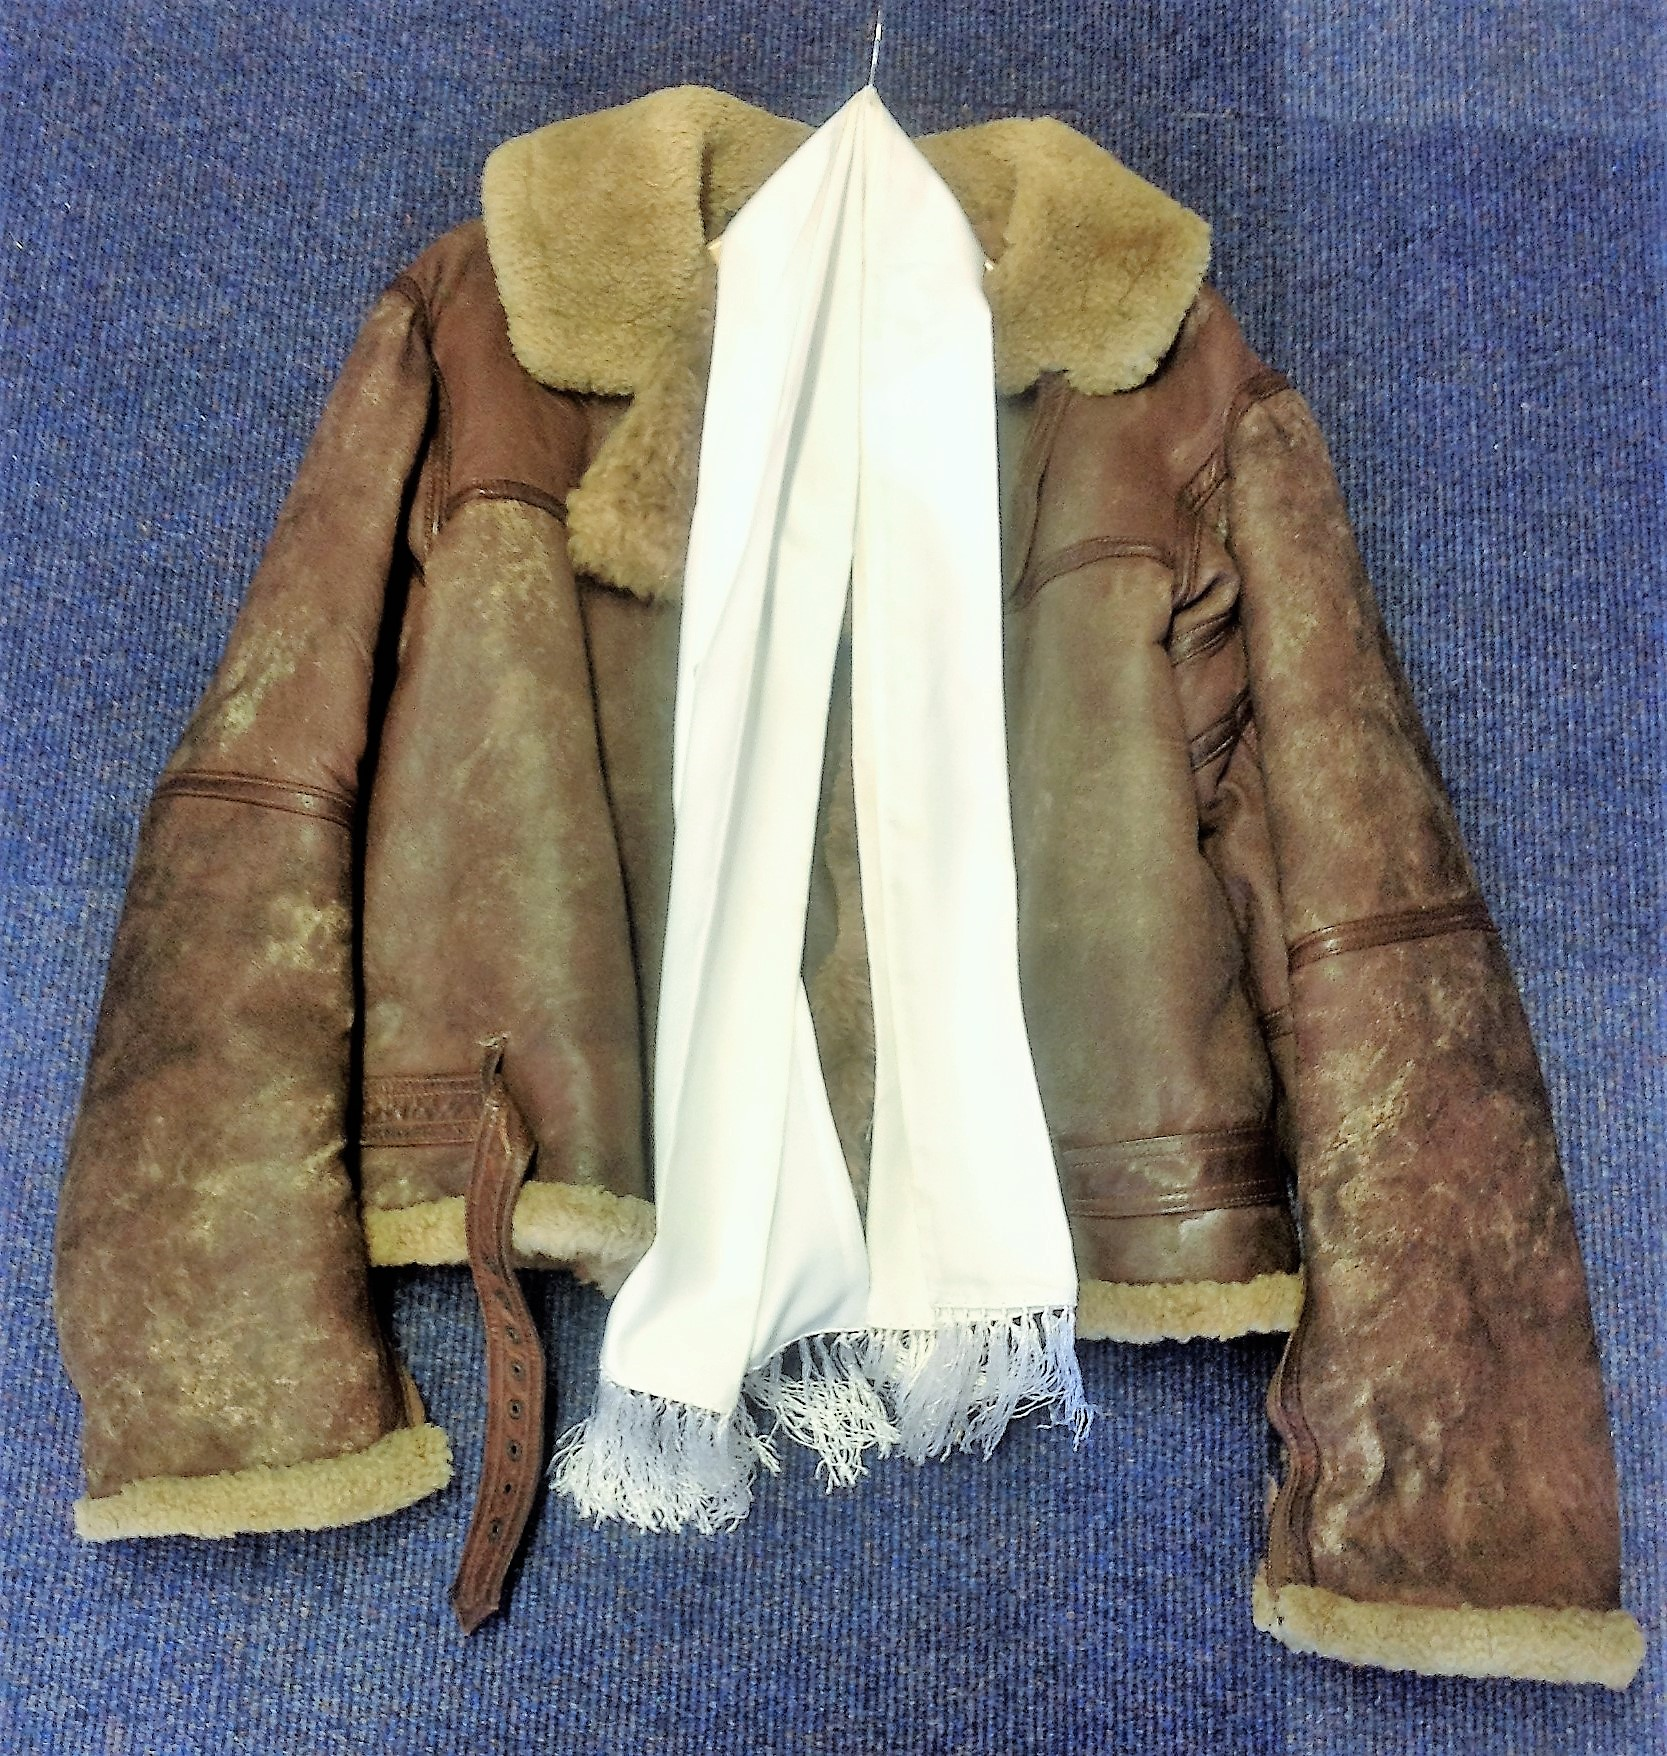 Lot 59 - Tirpitz raider WW2 RAF bomber Leather flight Jacket and white silk scarf owned by Warrant Officer.